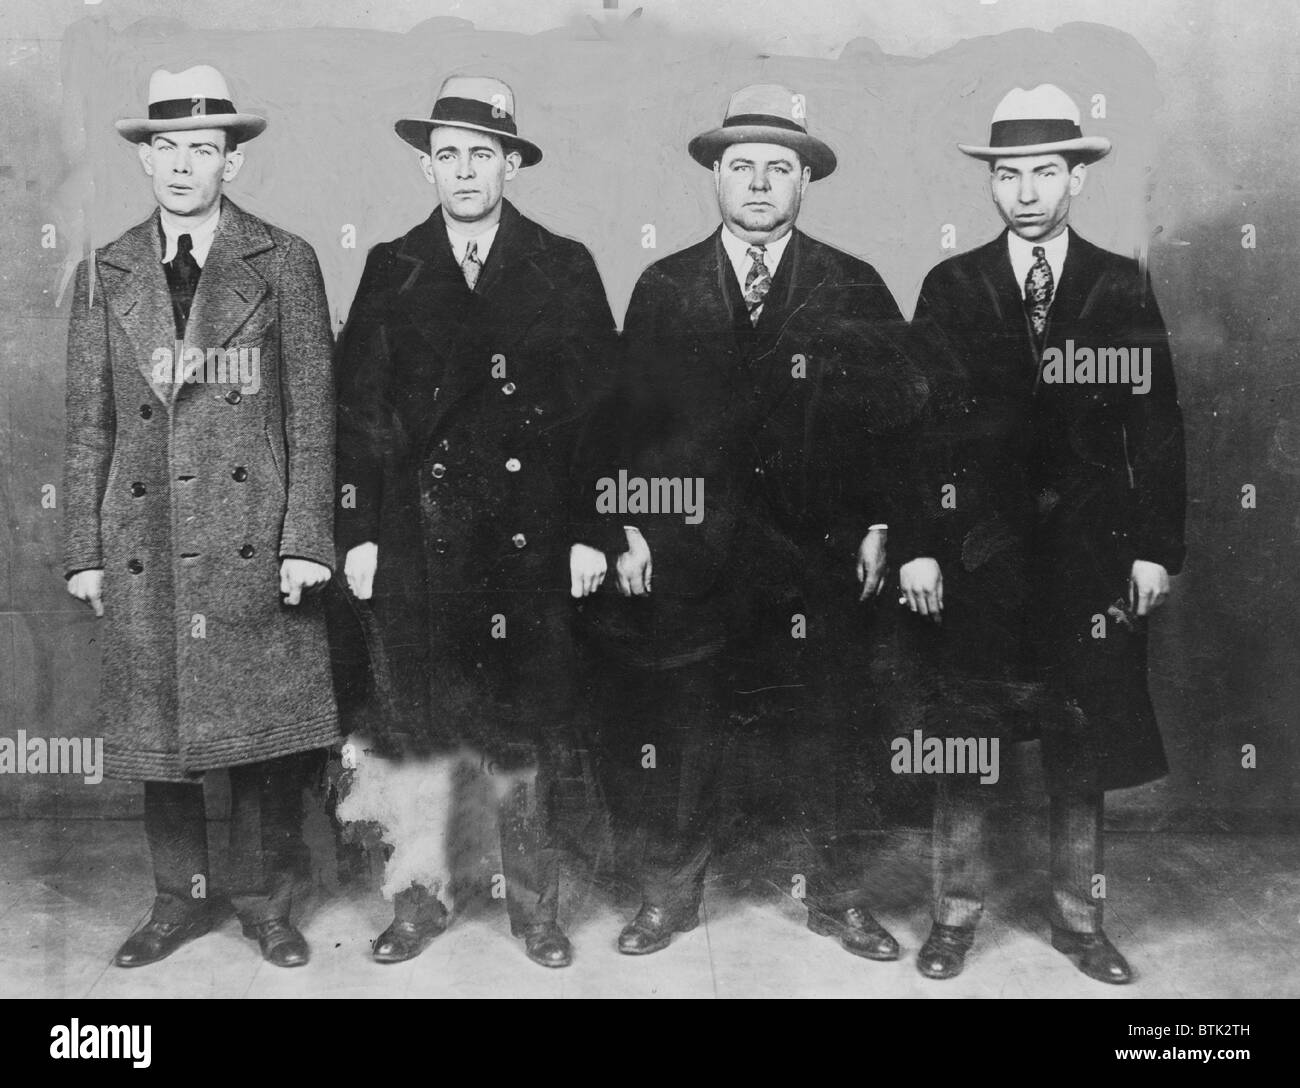 Mobsters of the 1920s